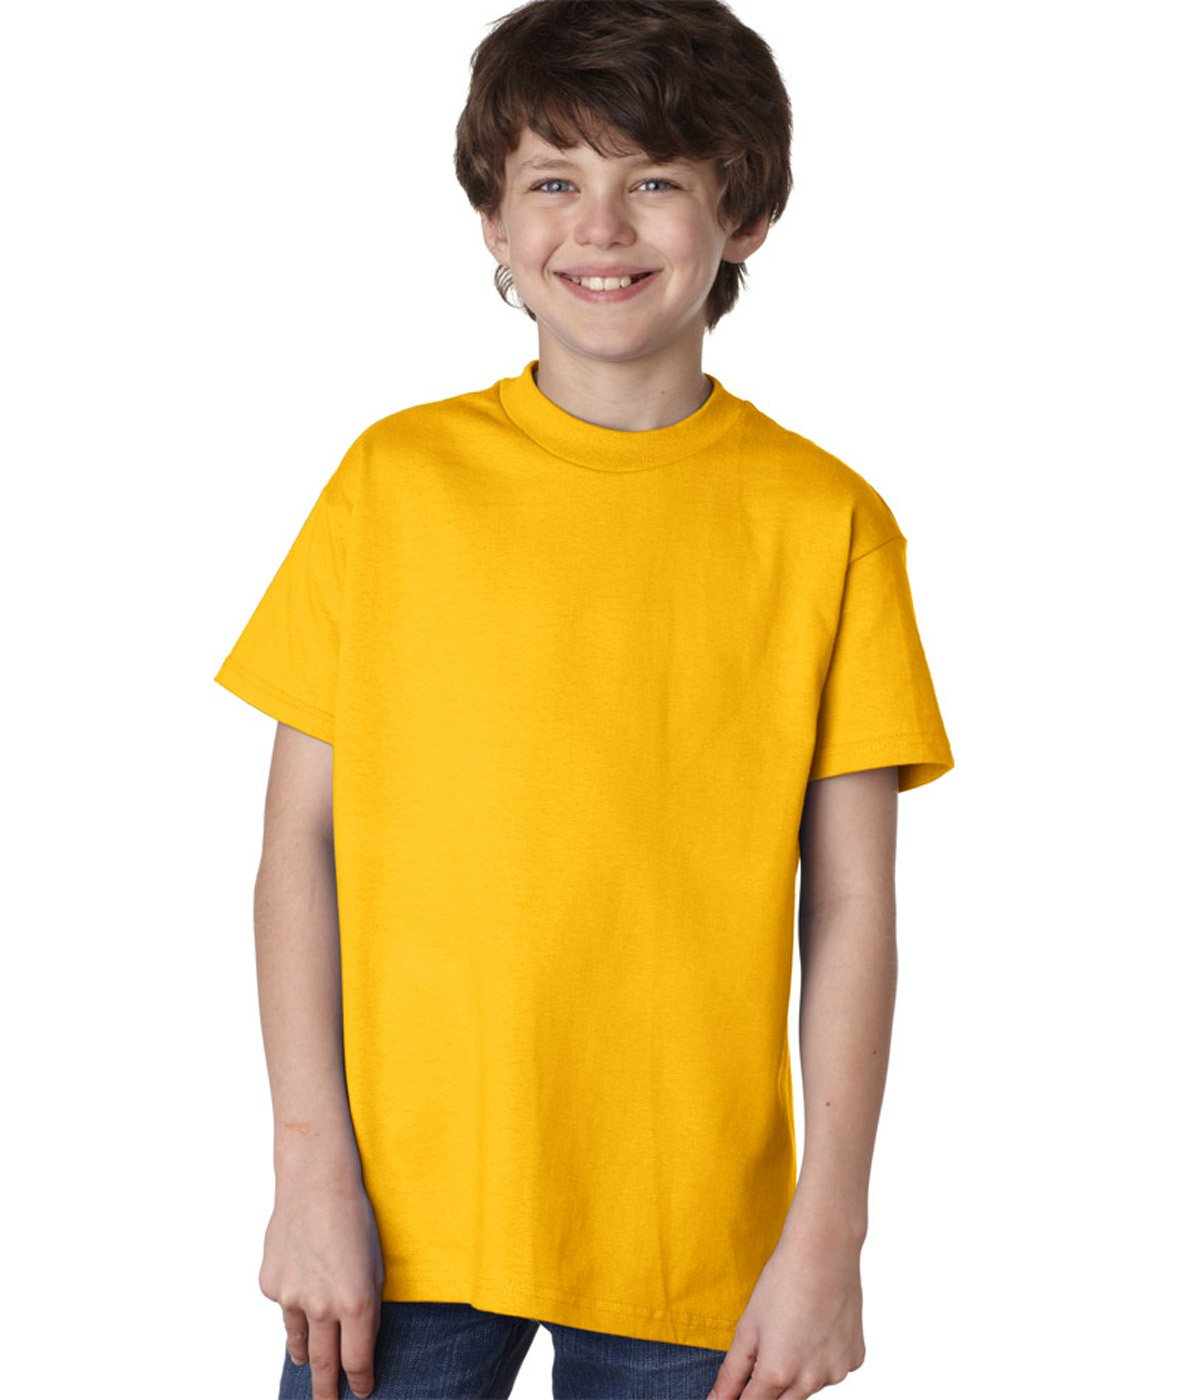 Hanes Youth 6.1 oz. Tagless T-Shirt 54500